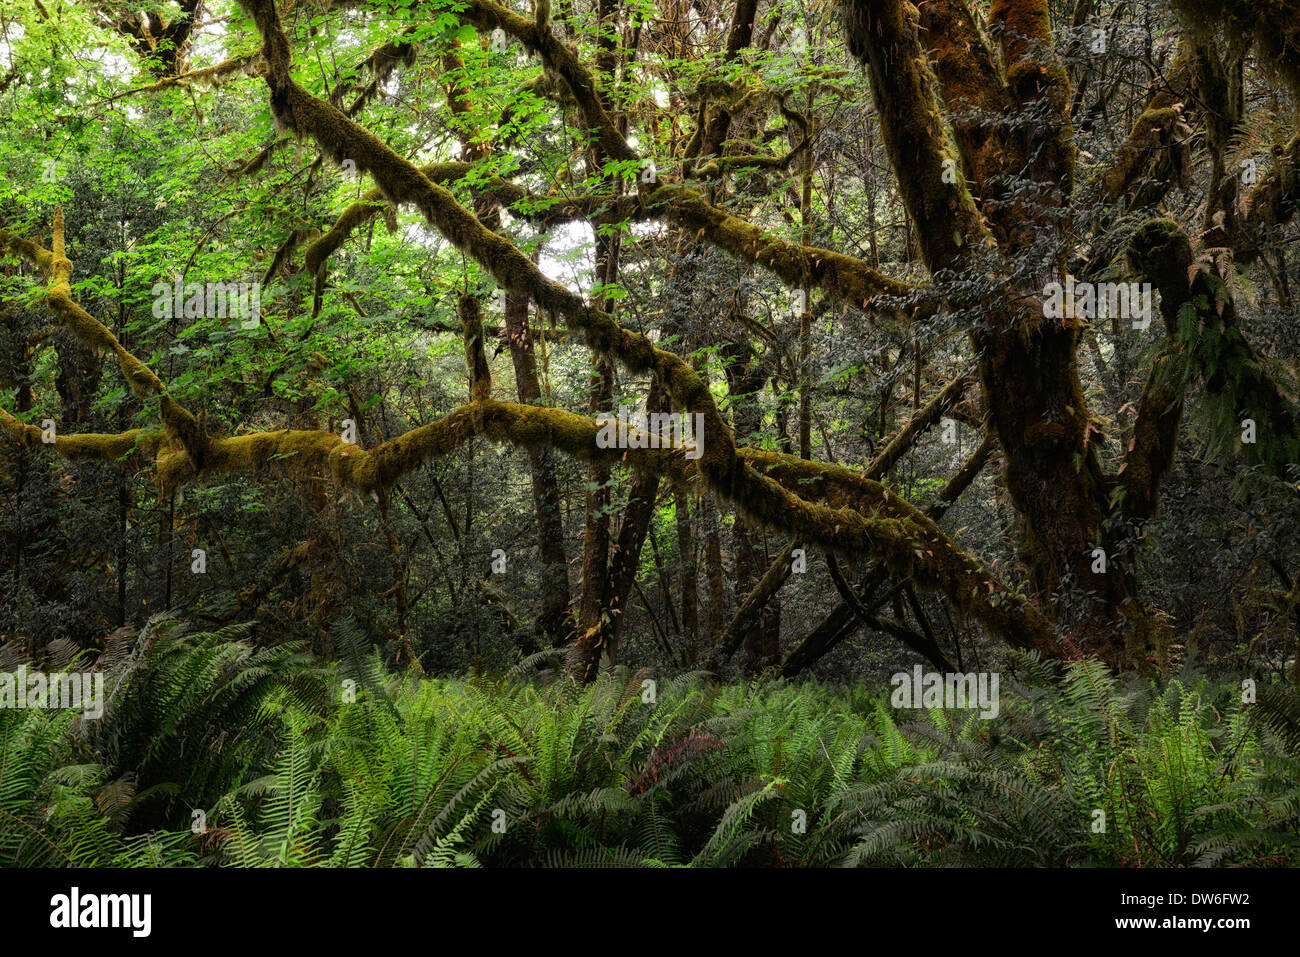 Undergrowth forest floor Del Norte Coast Redwood State Park sword fern polystichum munitum oxalis oregana coastal redwoods - Stock Image